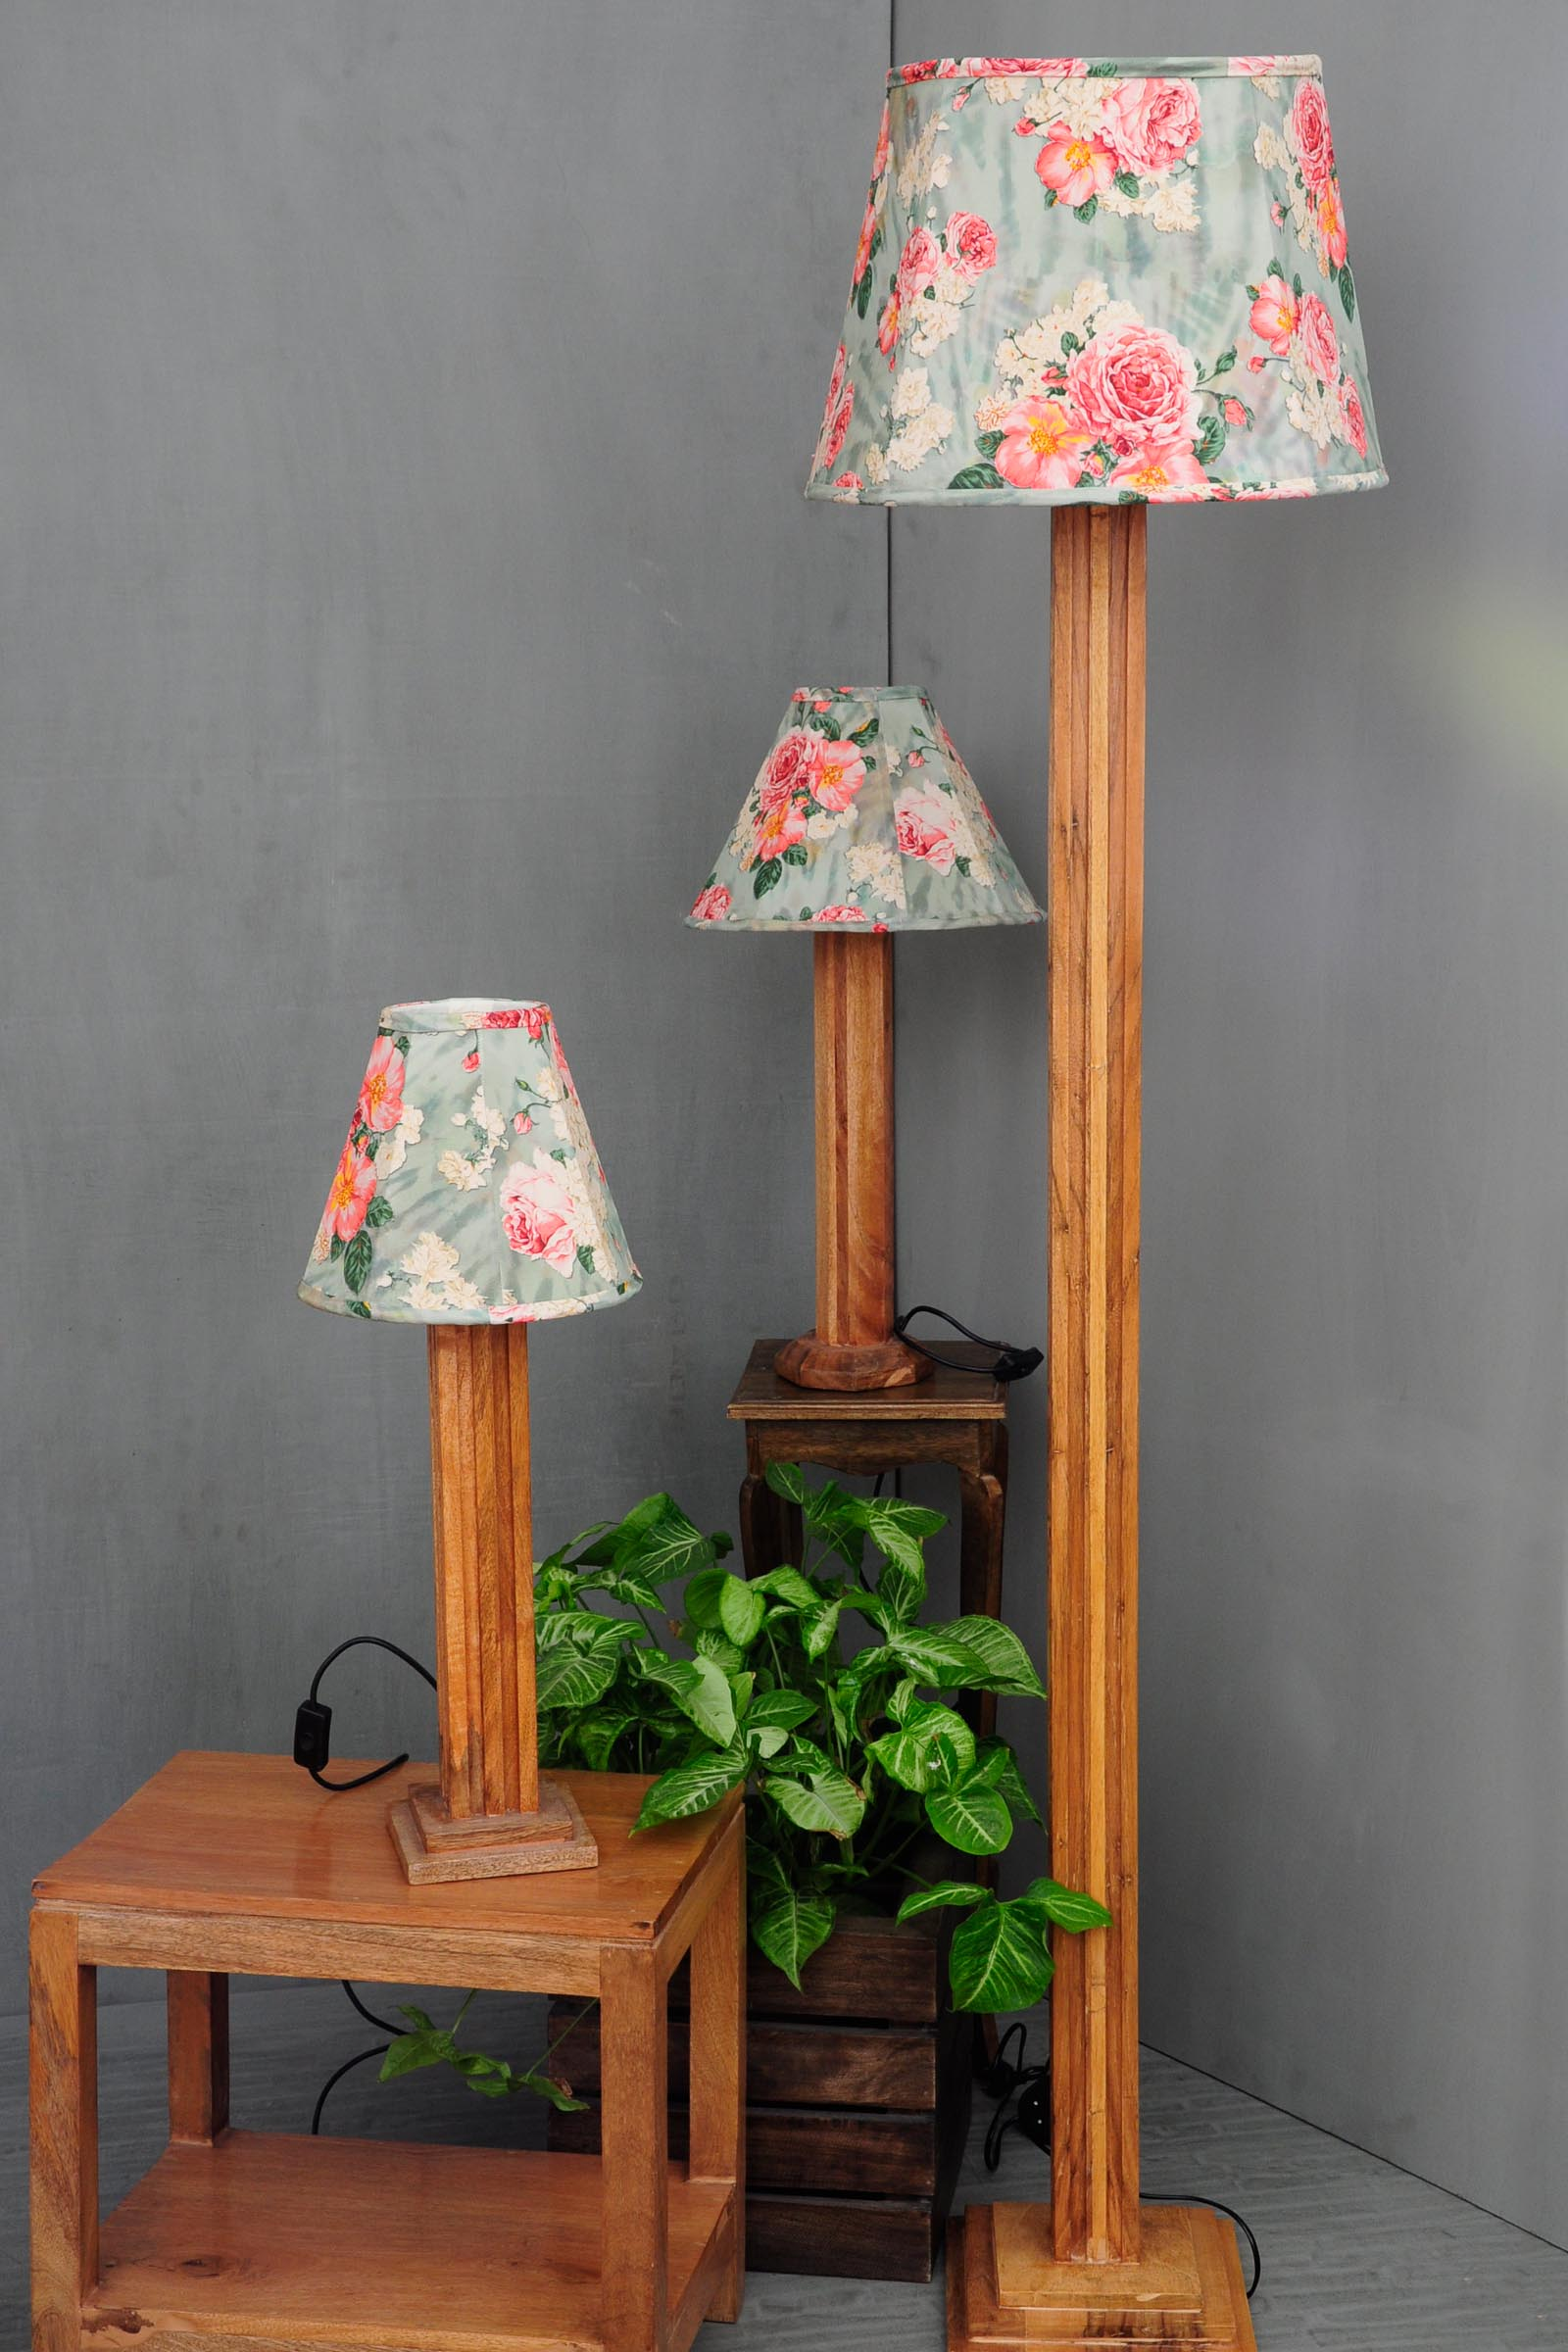 Forever Beauty Small Lamp Shade